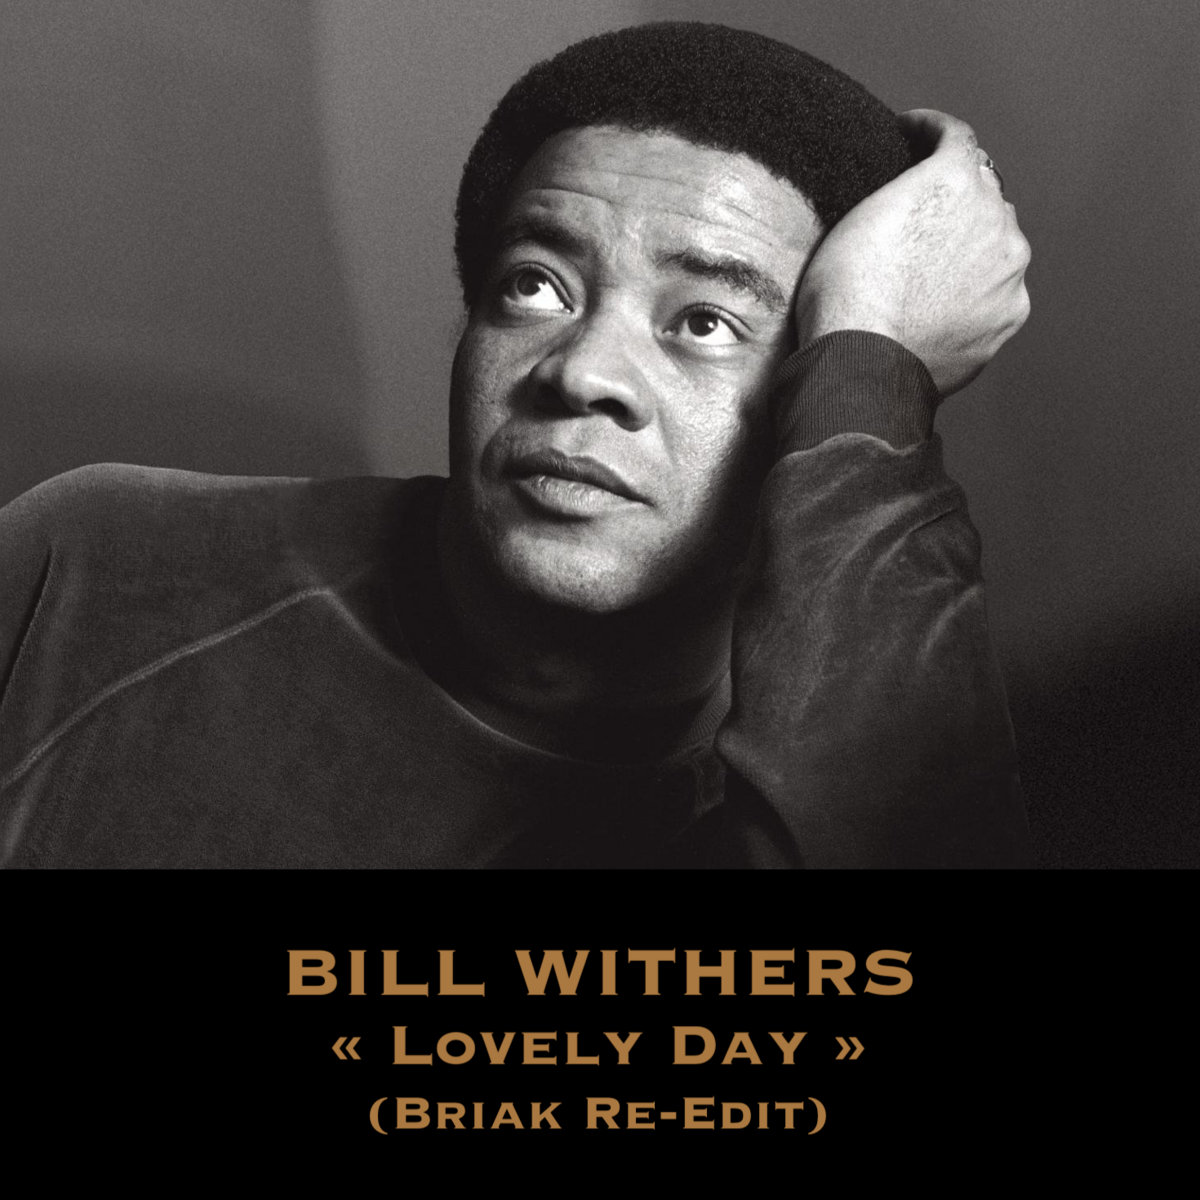 bill withers lovely day mp3 download free